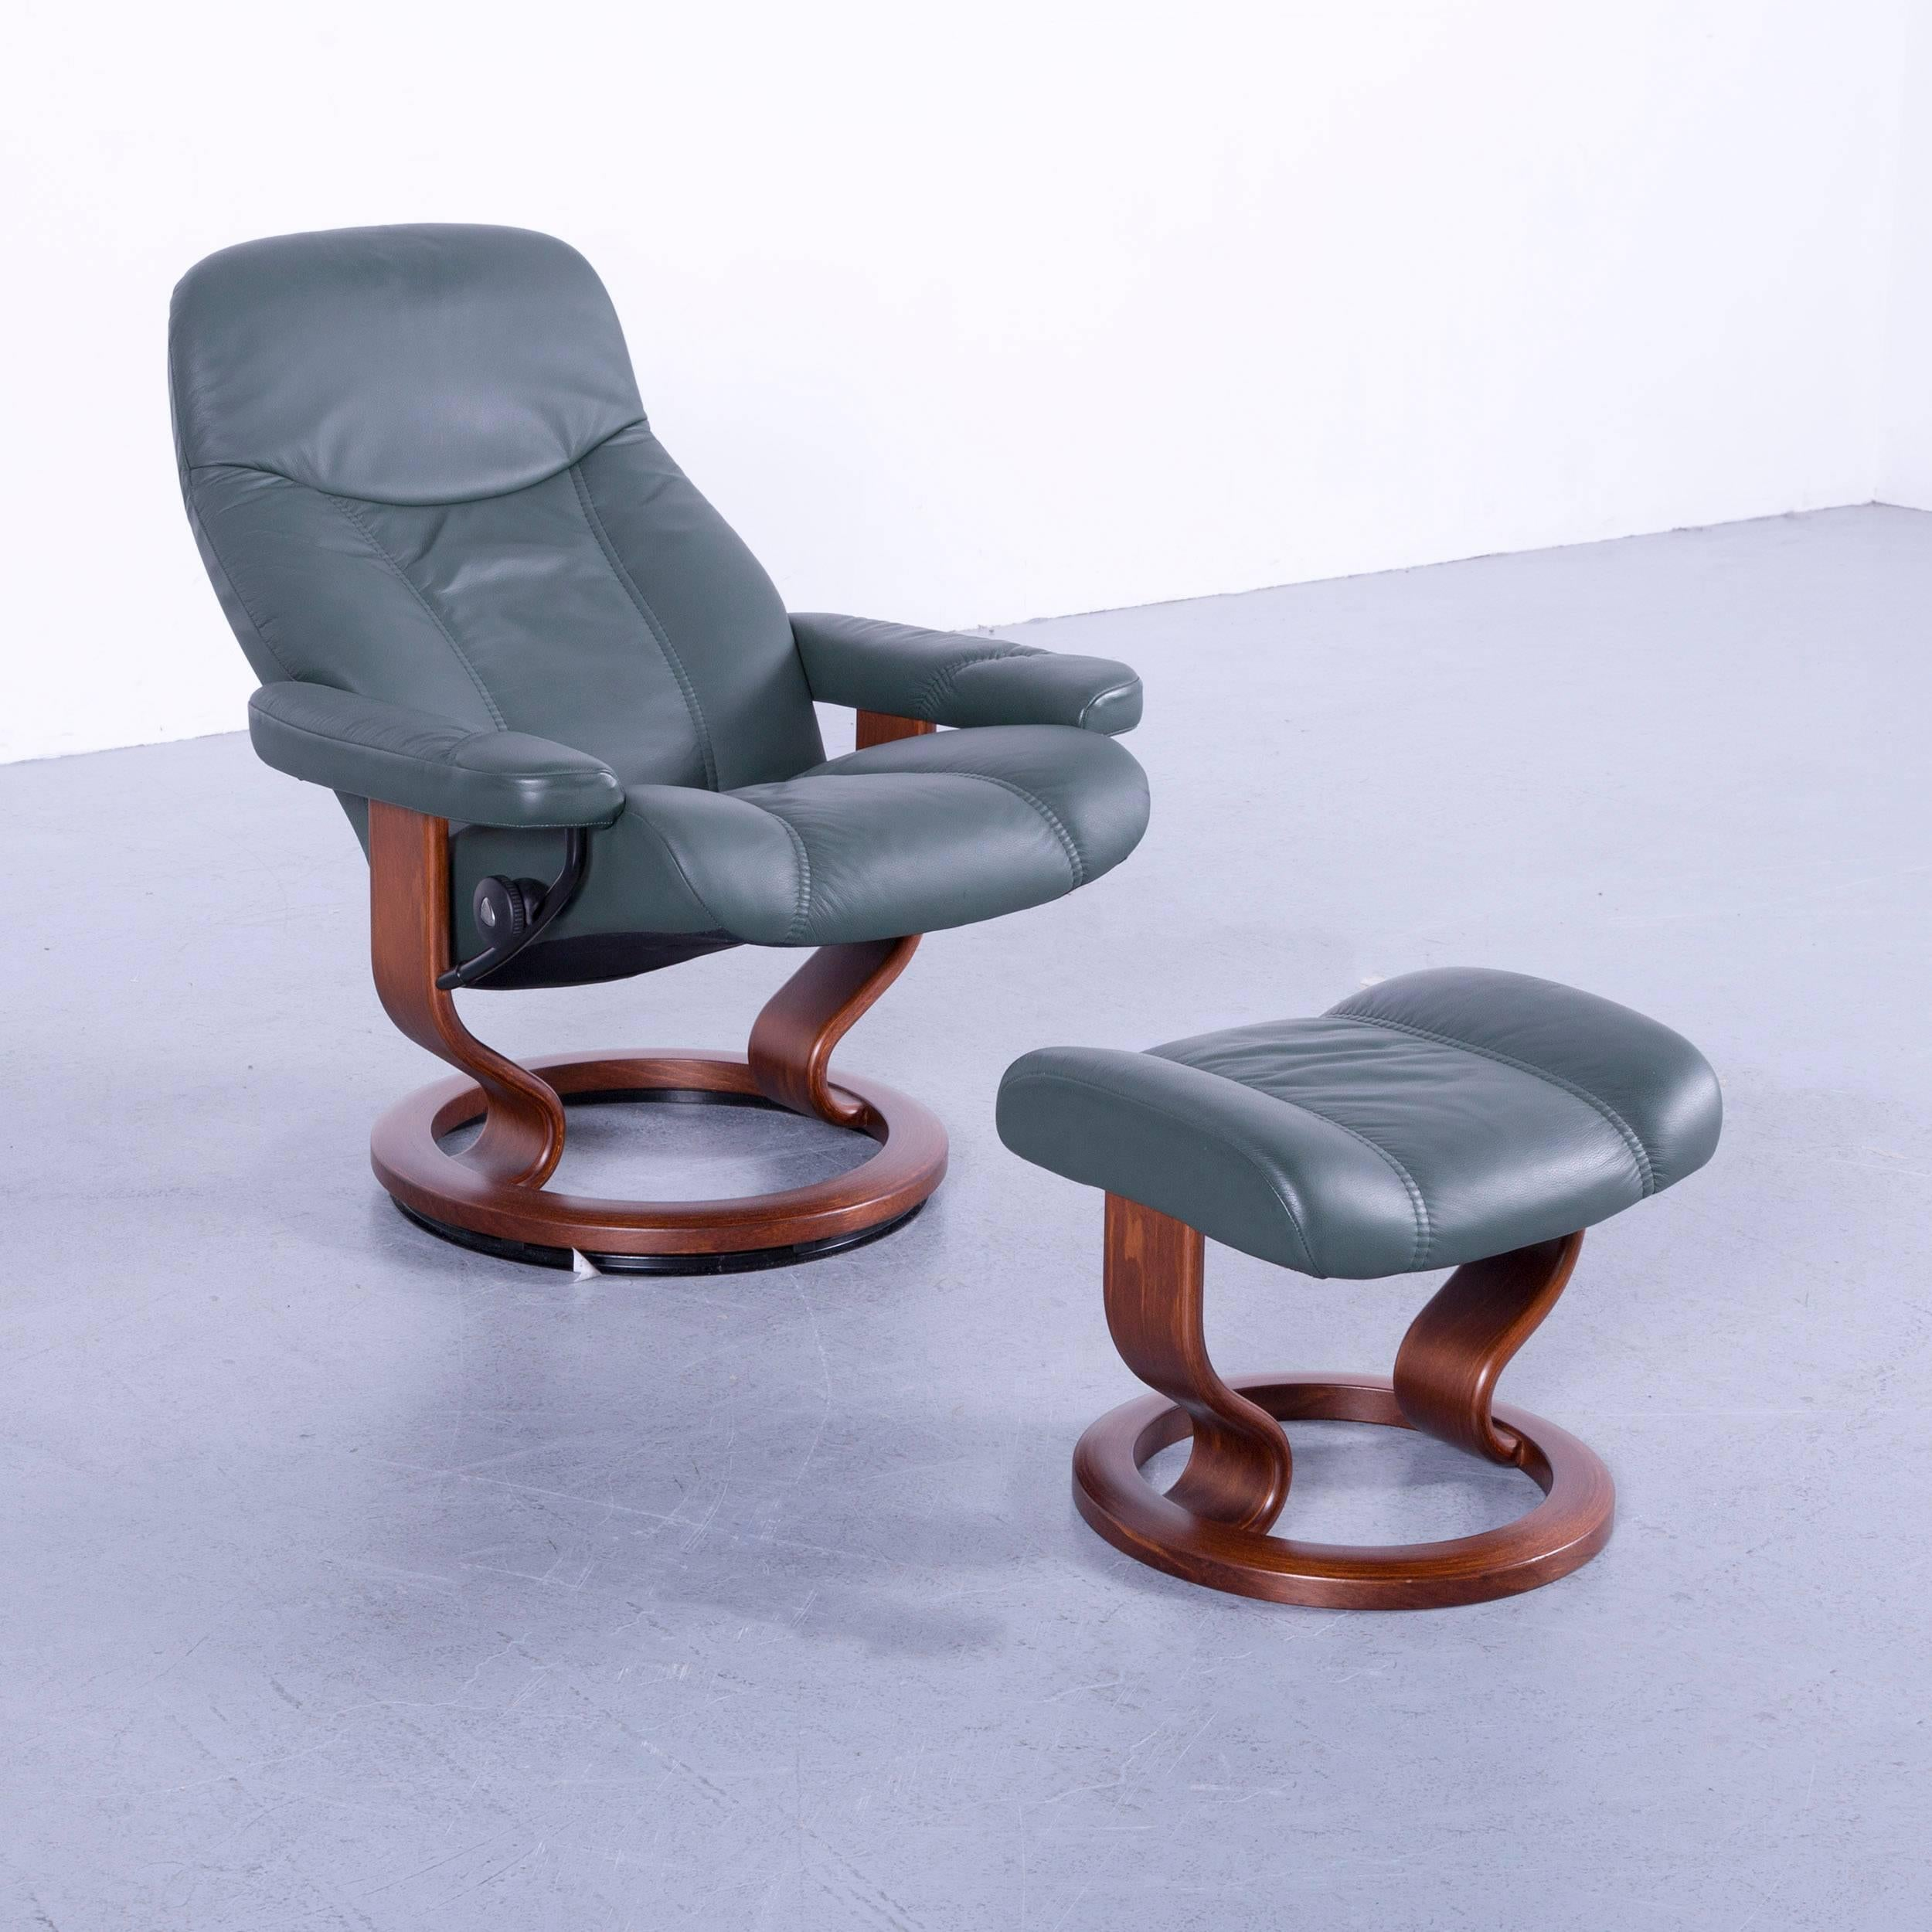 We Bring To You An Ekornes Stressless Consul Armchair Set Green Leather  Modern Recliner Chair.